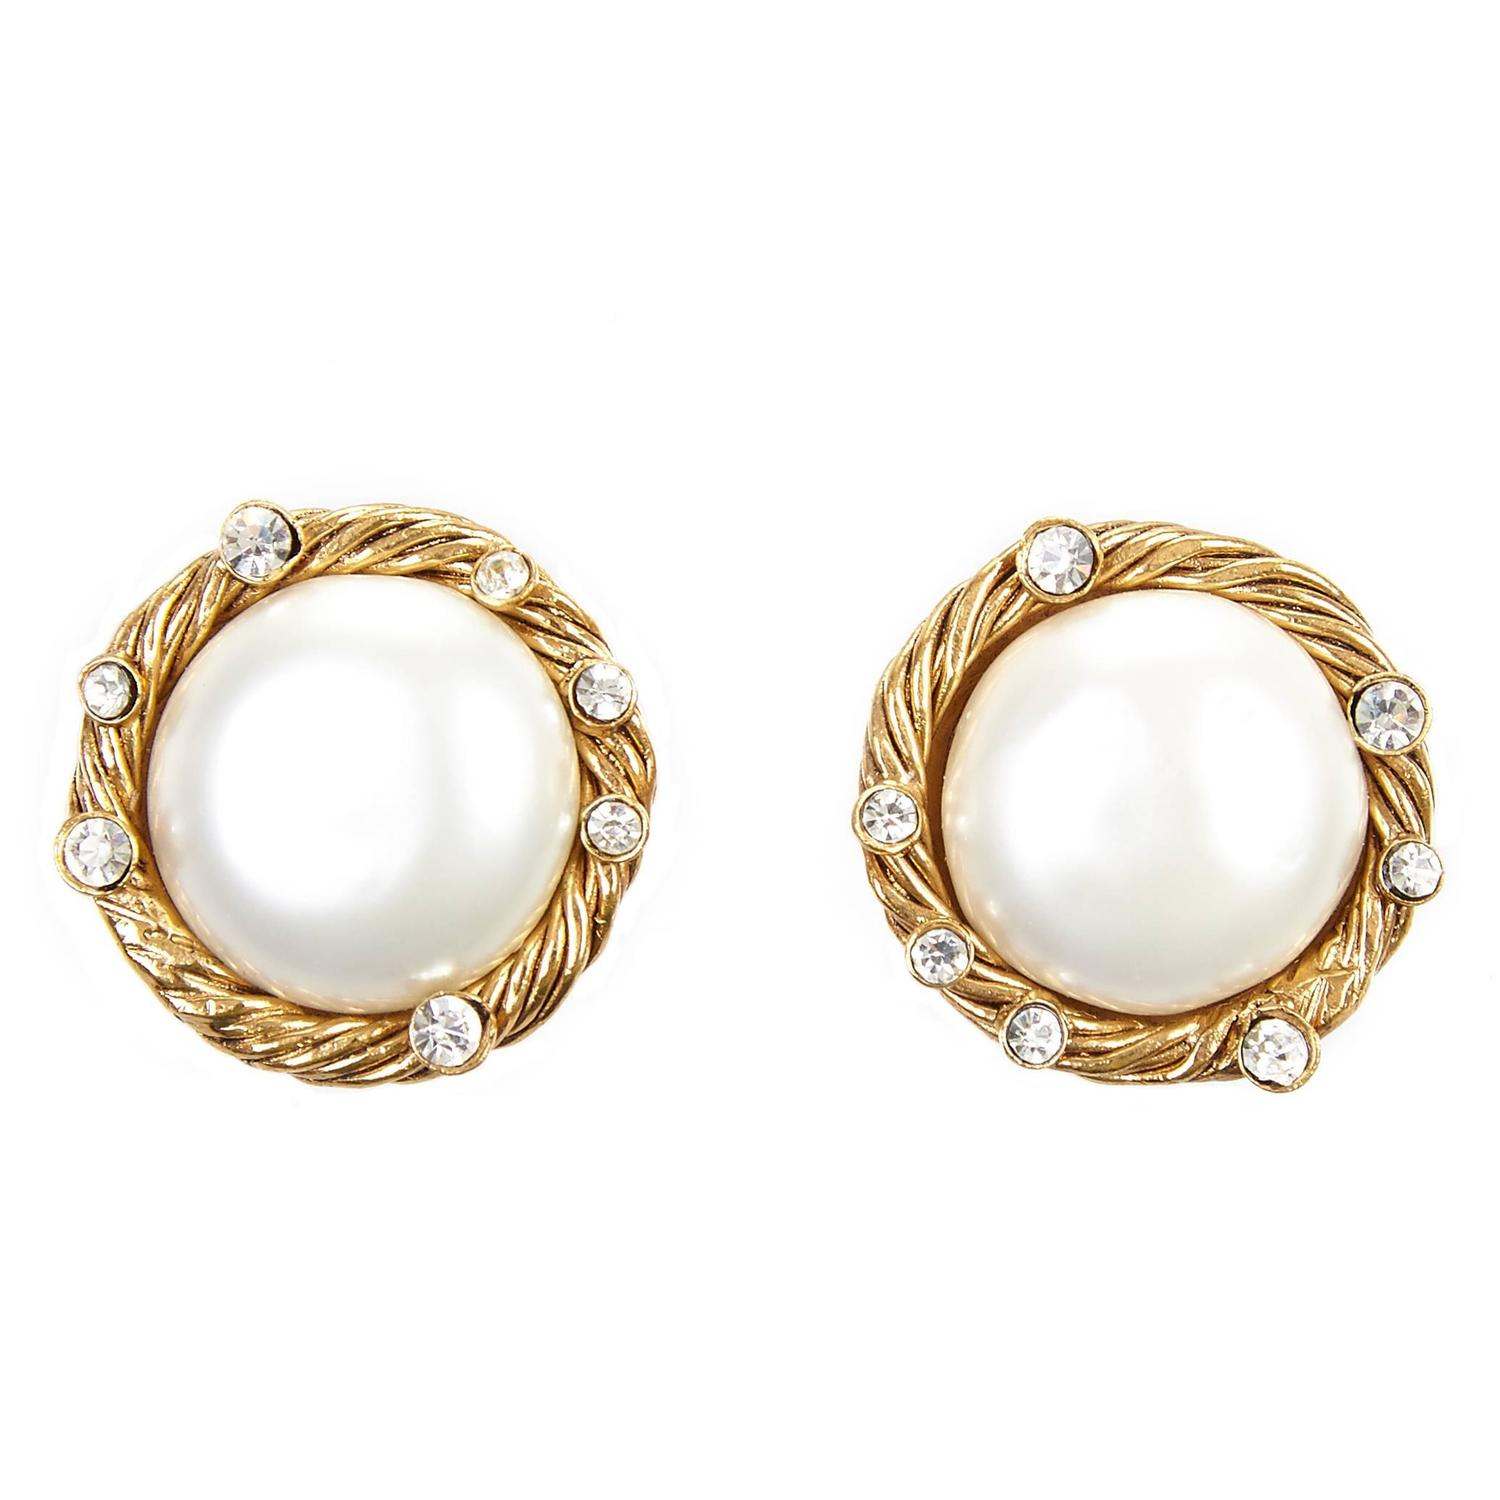 1990s chanel pearl and diamante earrings for sale at 1stdibs